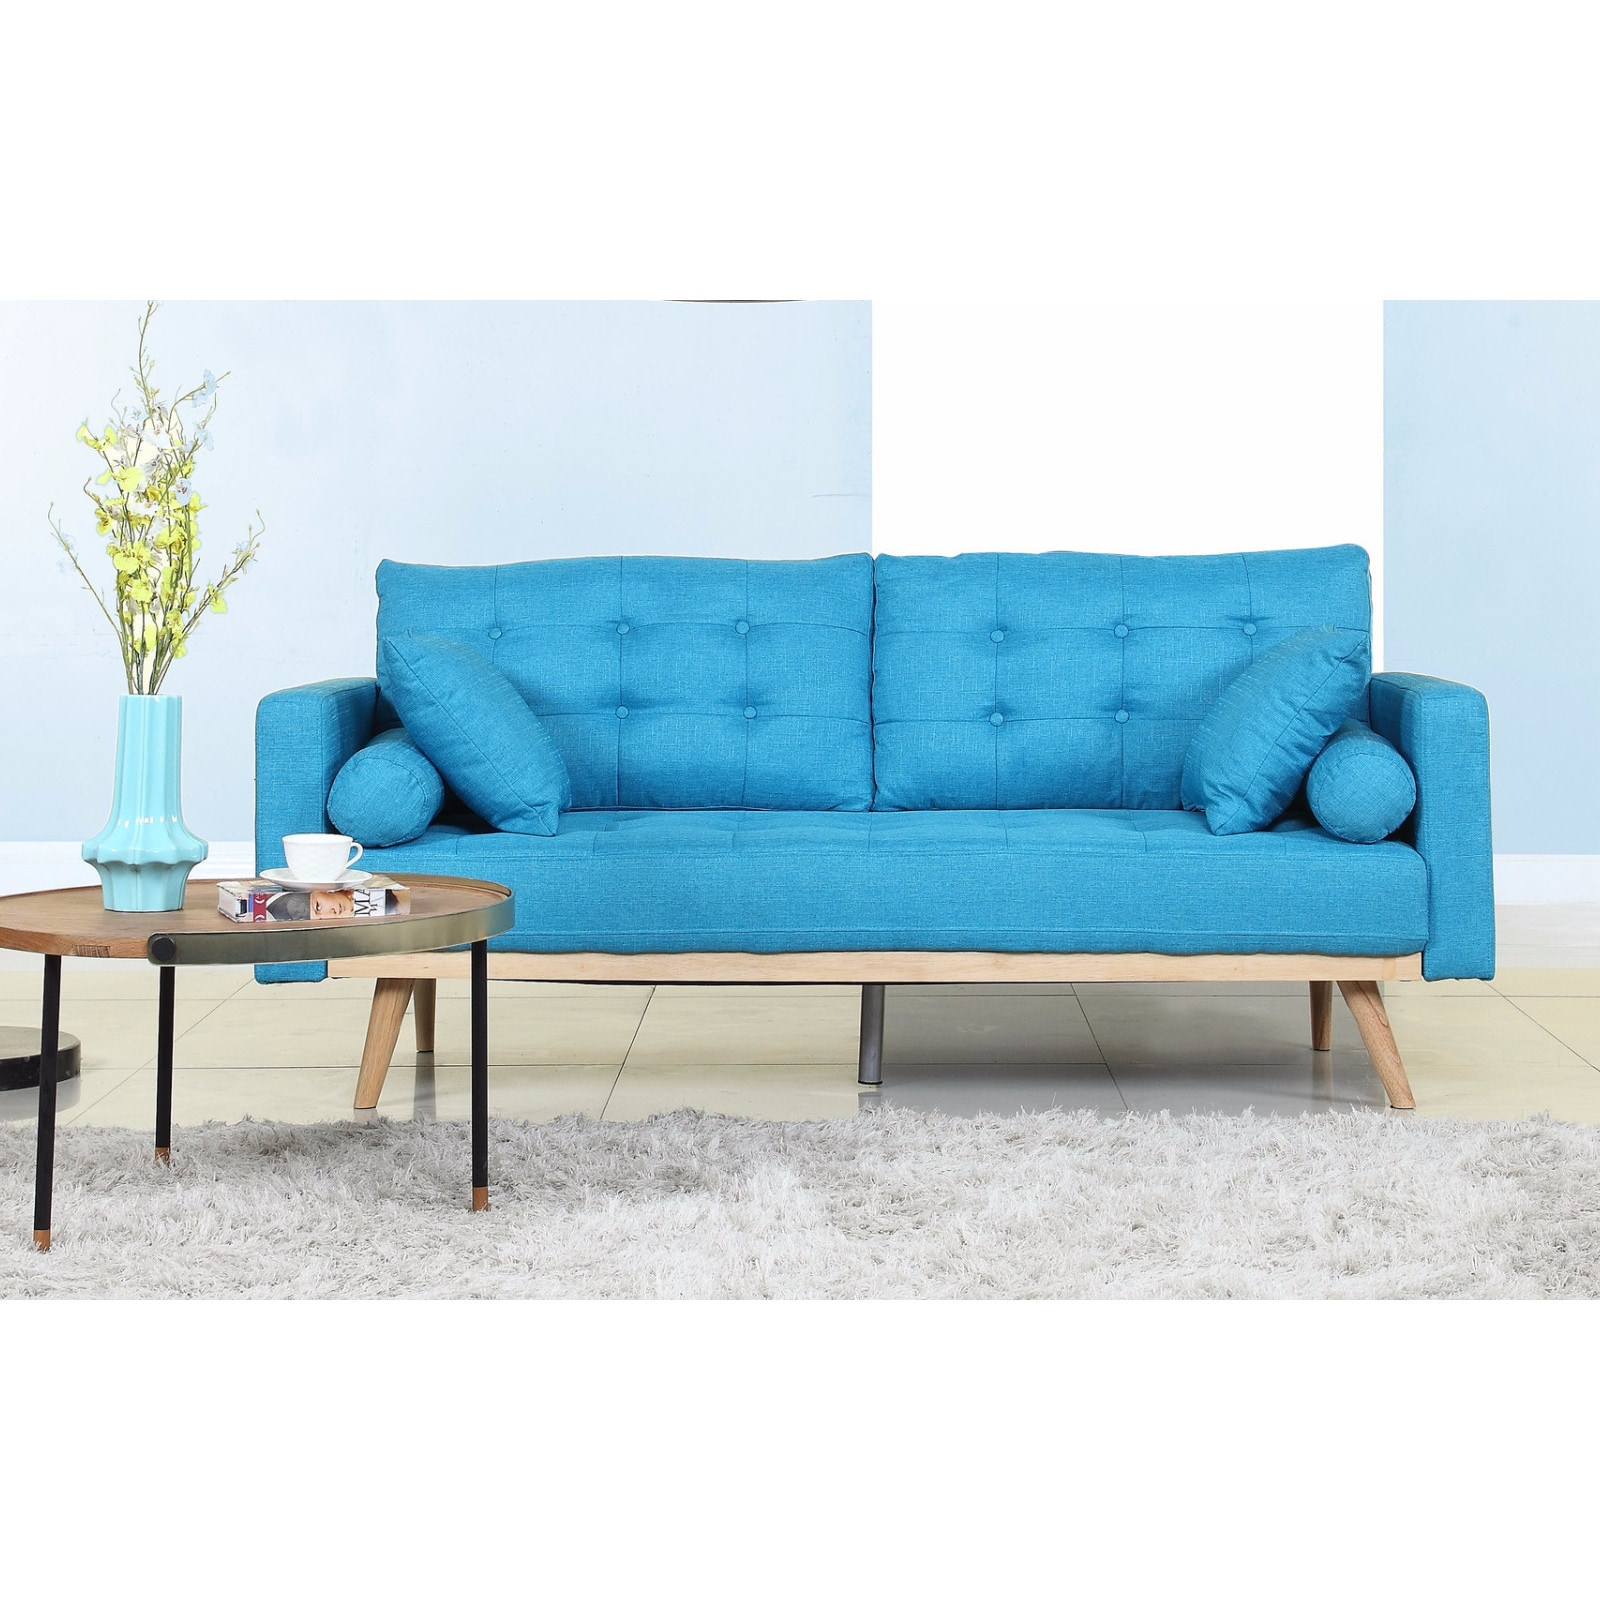 Buy blue sofas couches online at overstock com our best living room furniture deals